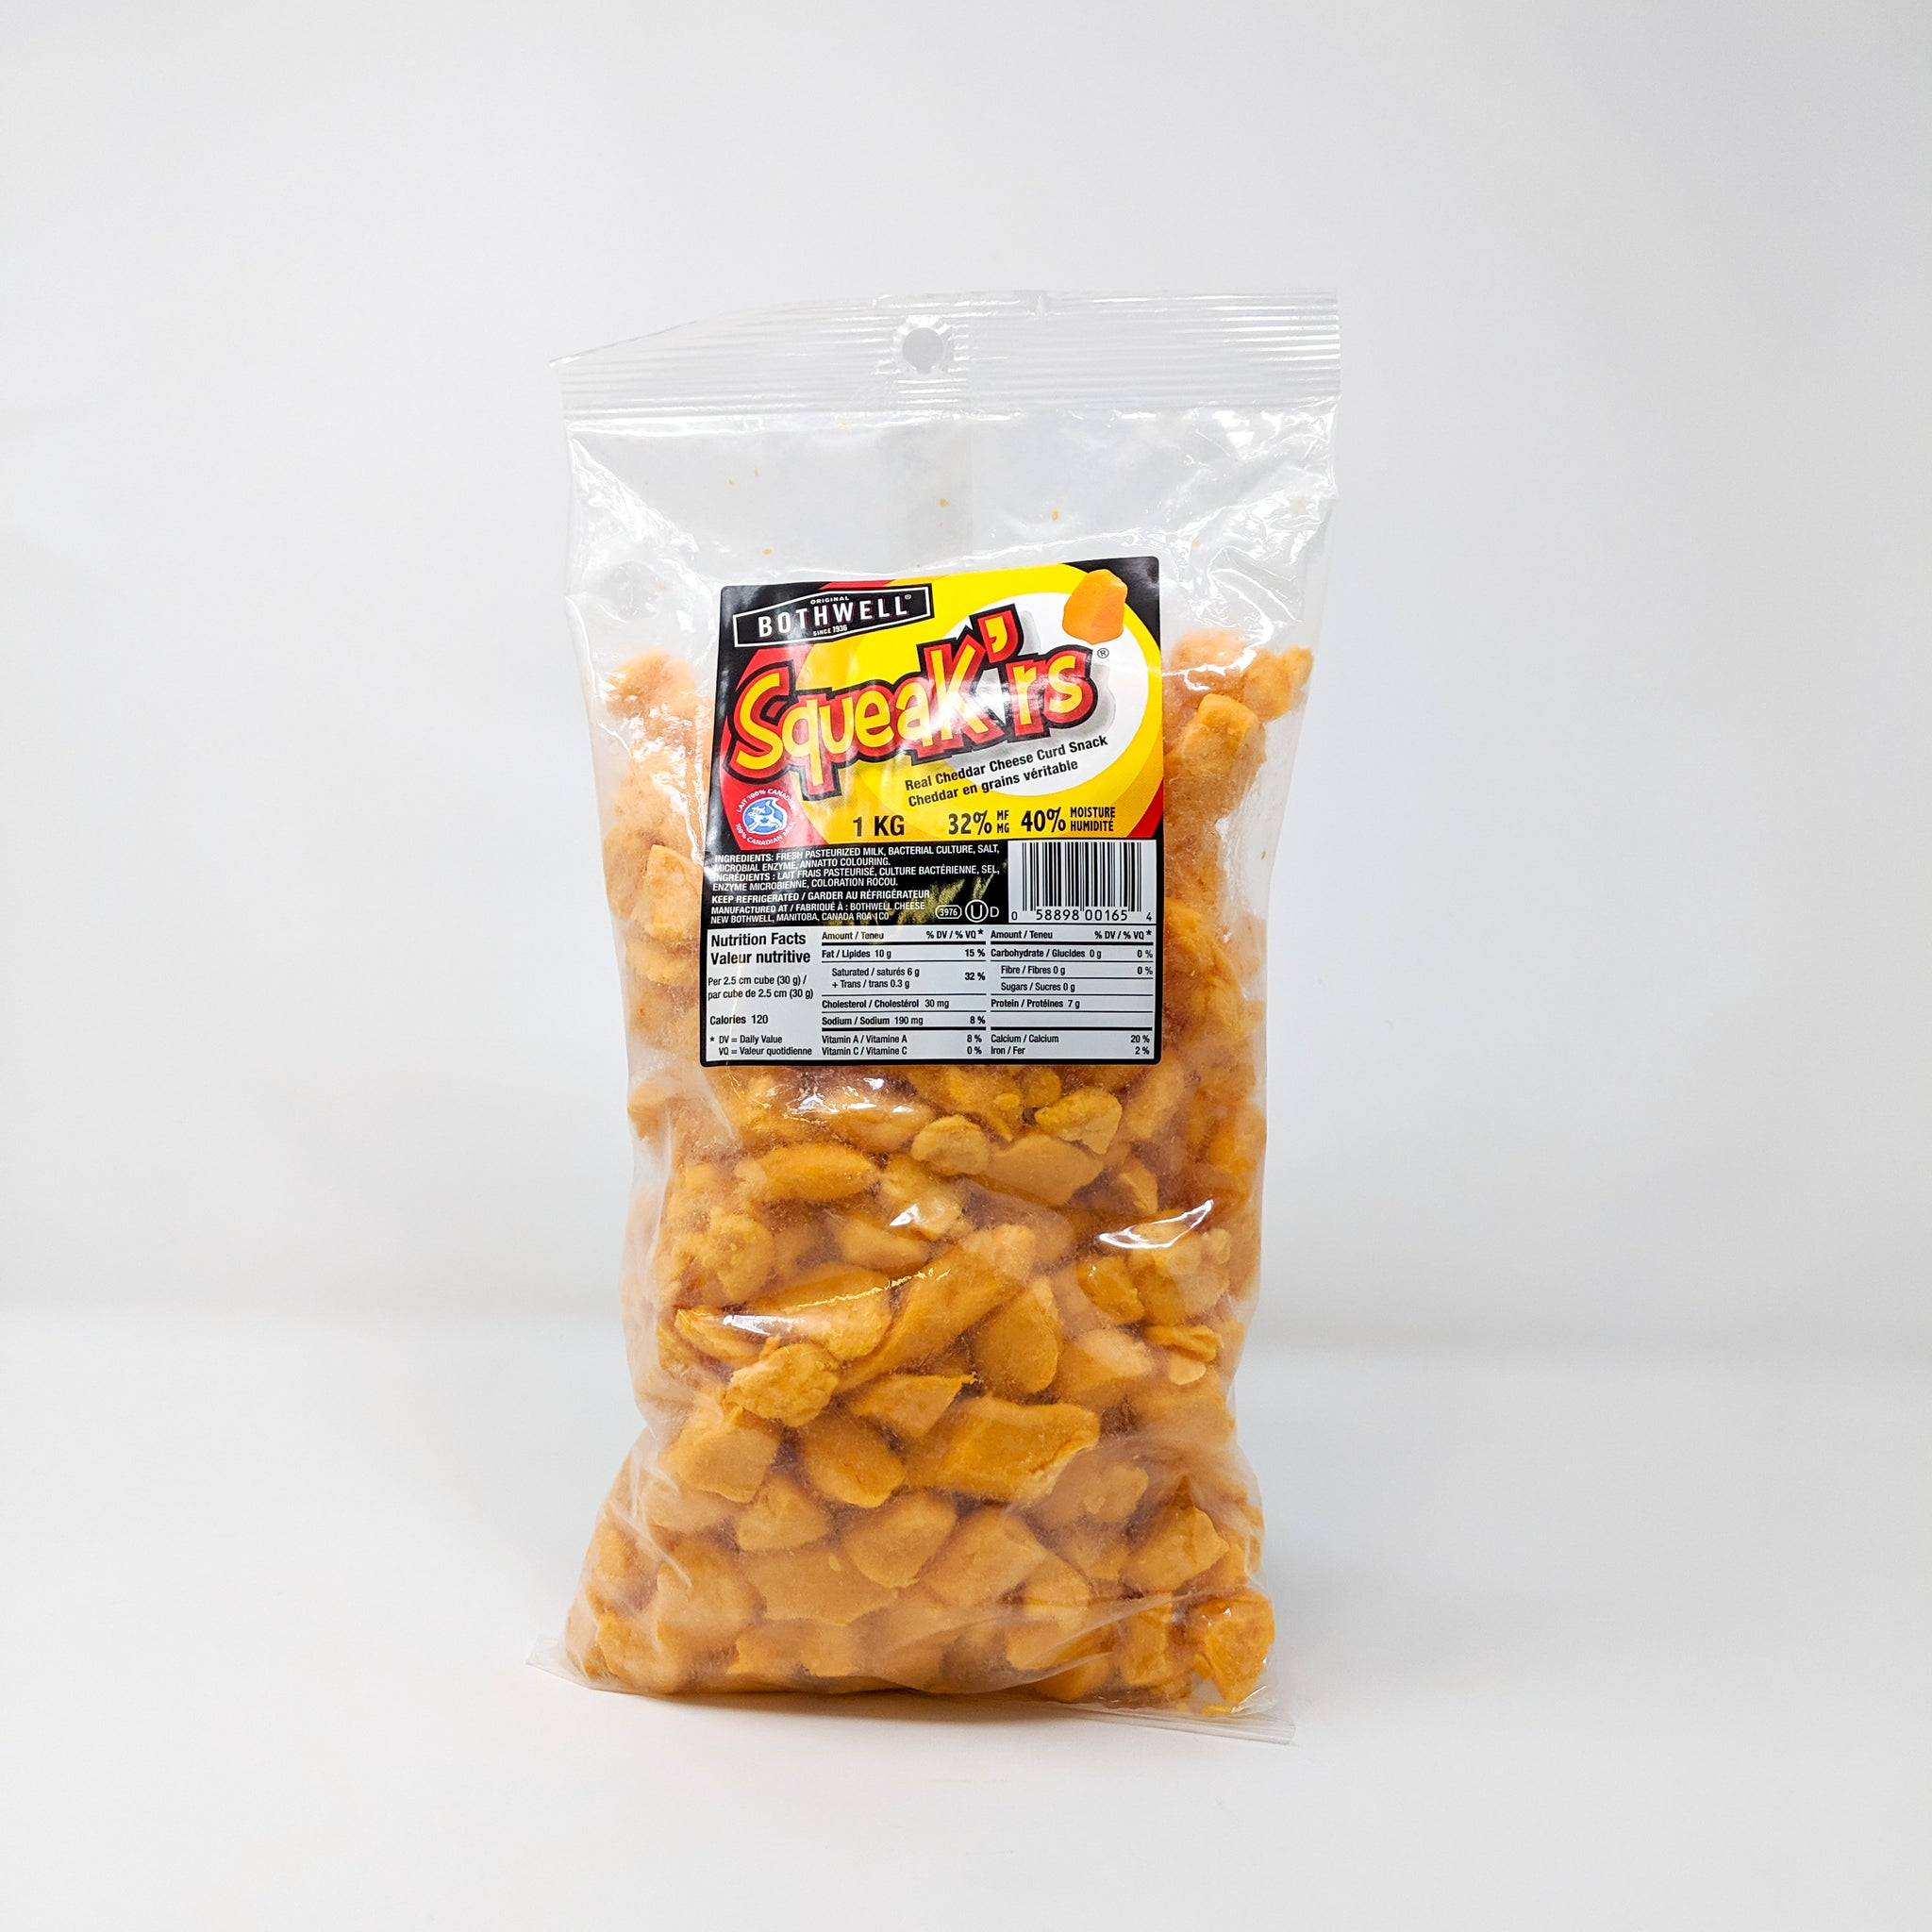 Cheese Curds Yellow 1kg - Bothwell Cheese